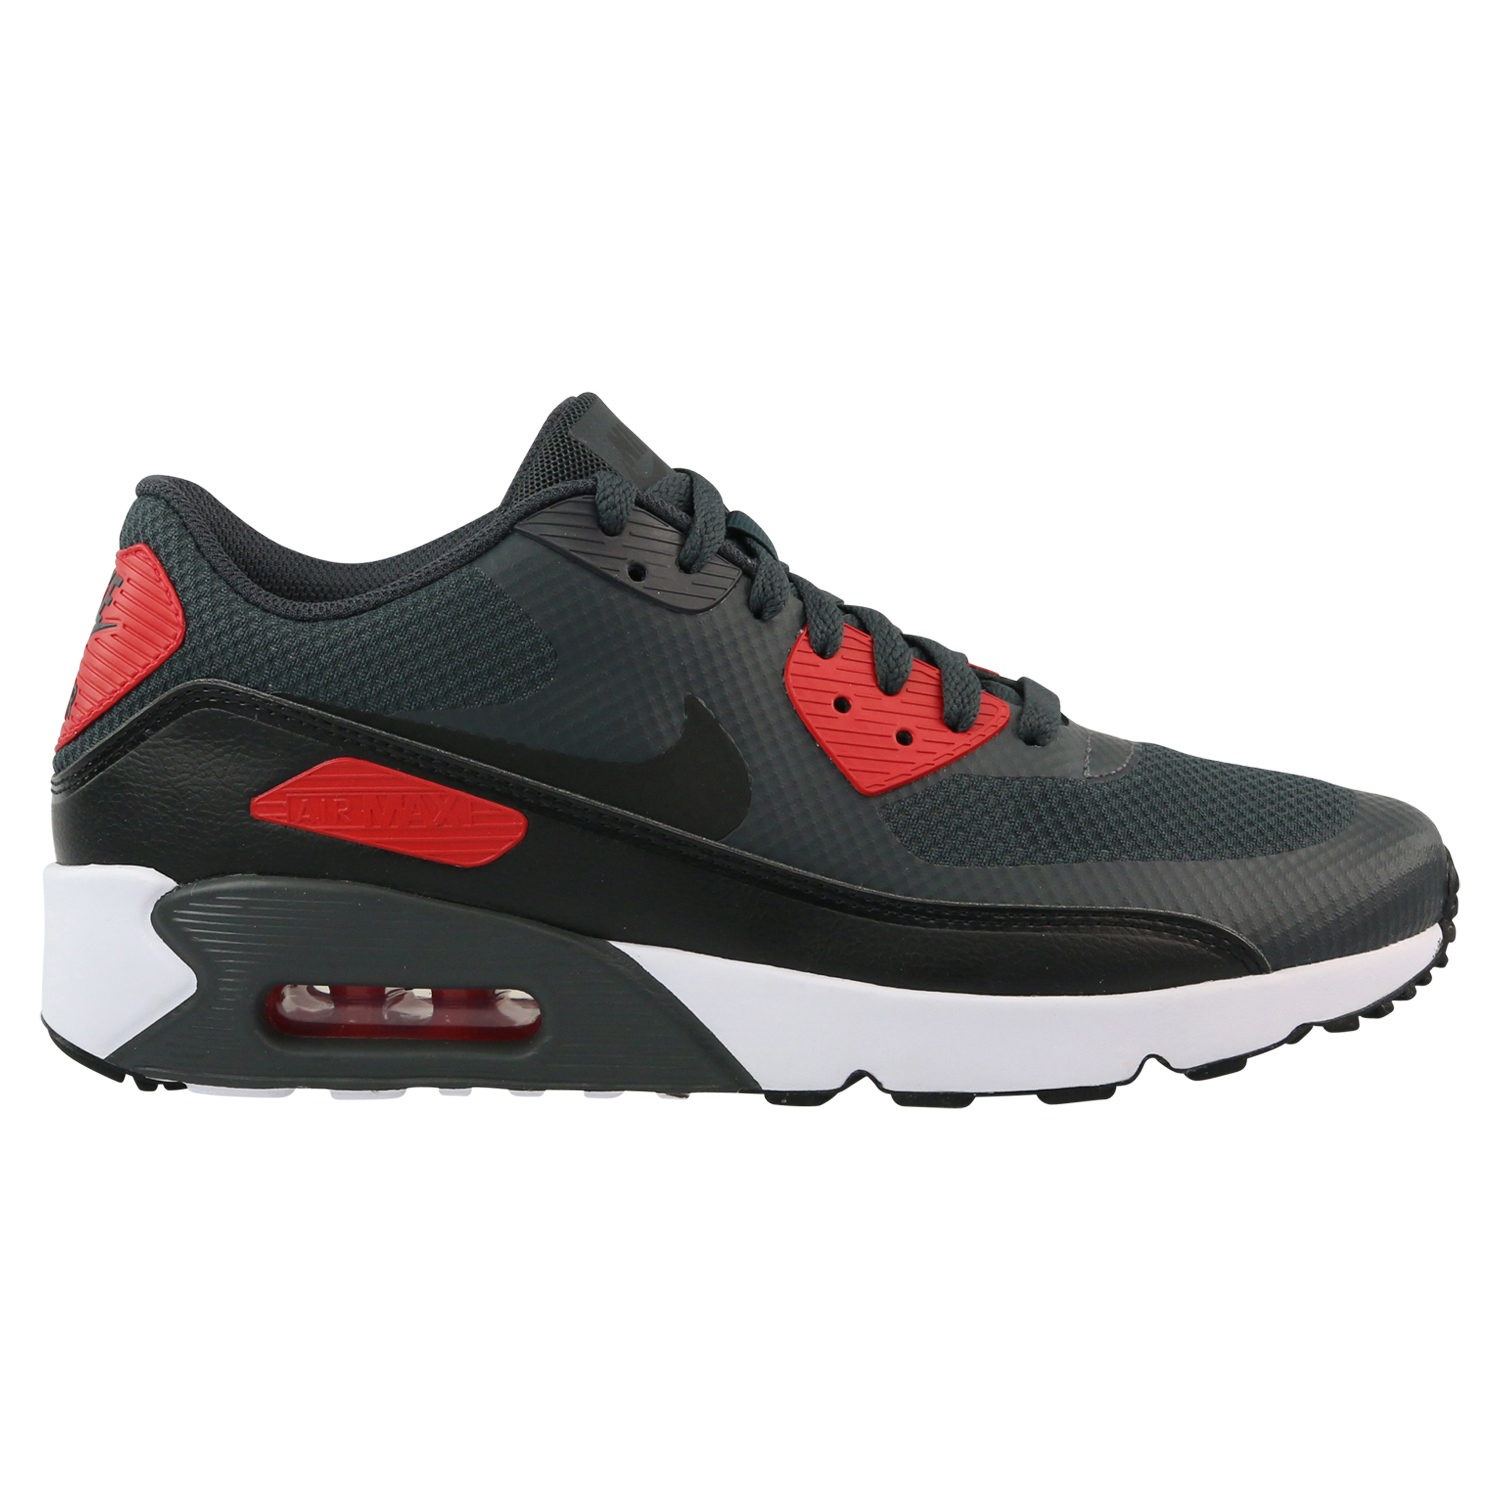 more photos 3d516 9dbd1 Air Max 90 Nike Ultra Br Schuhe Weise Entscheidung Orange Grau.   FMK ONA    ...